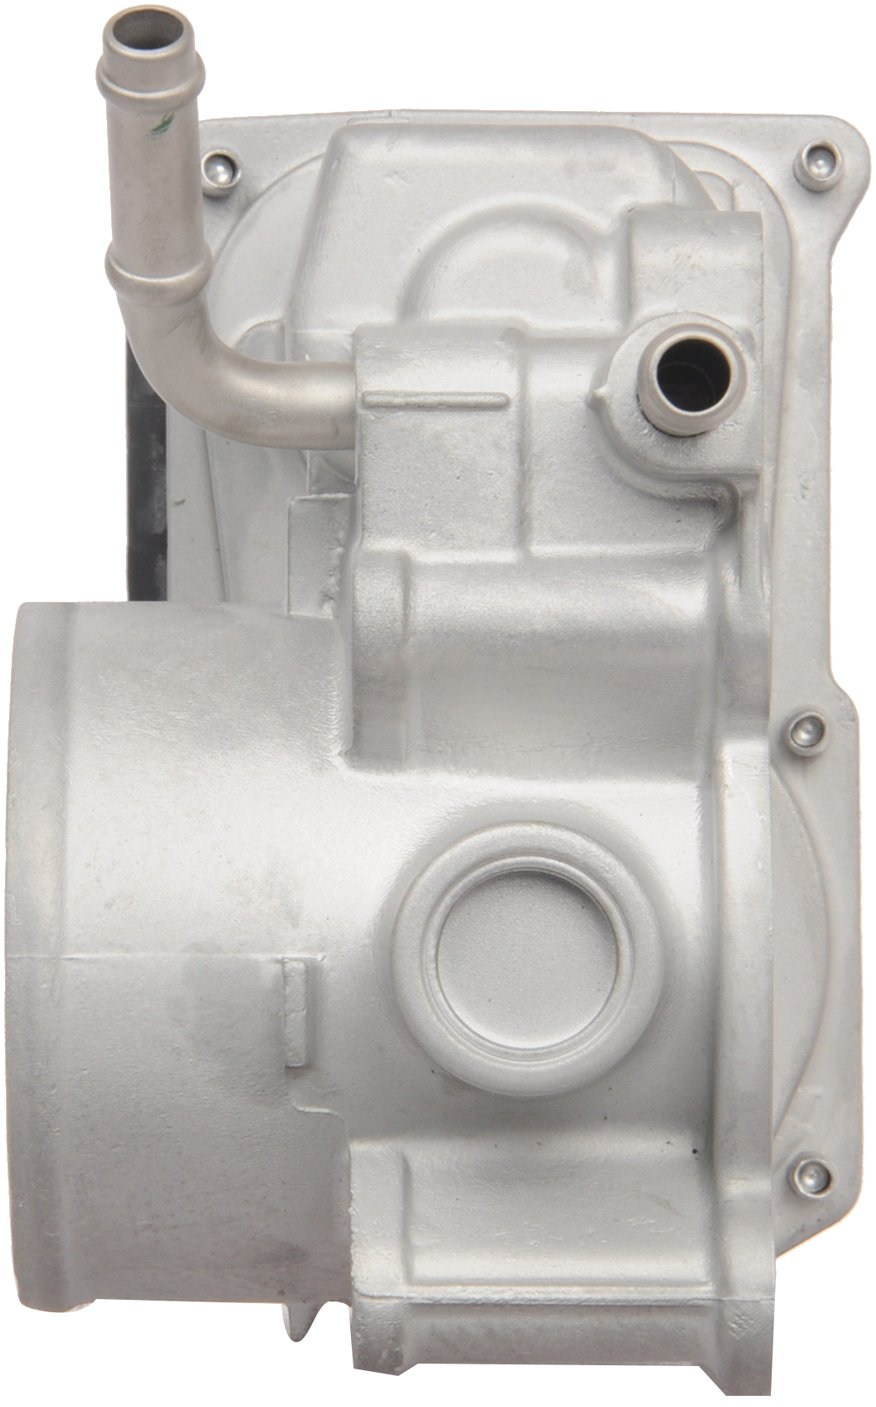 hight resolution of 2006 pontiac vibe fuel injection throttle body a1 67 8003